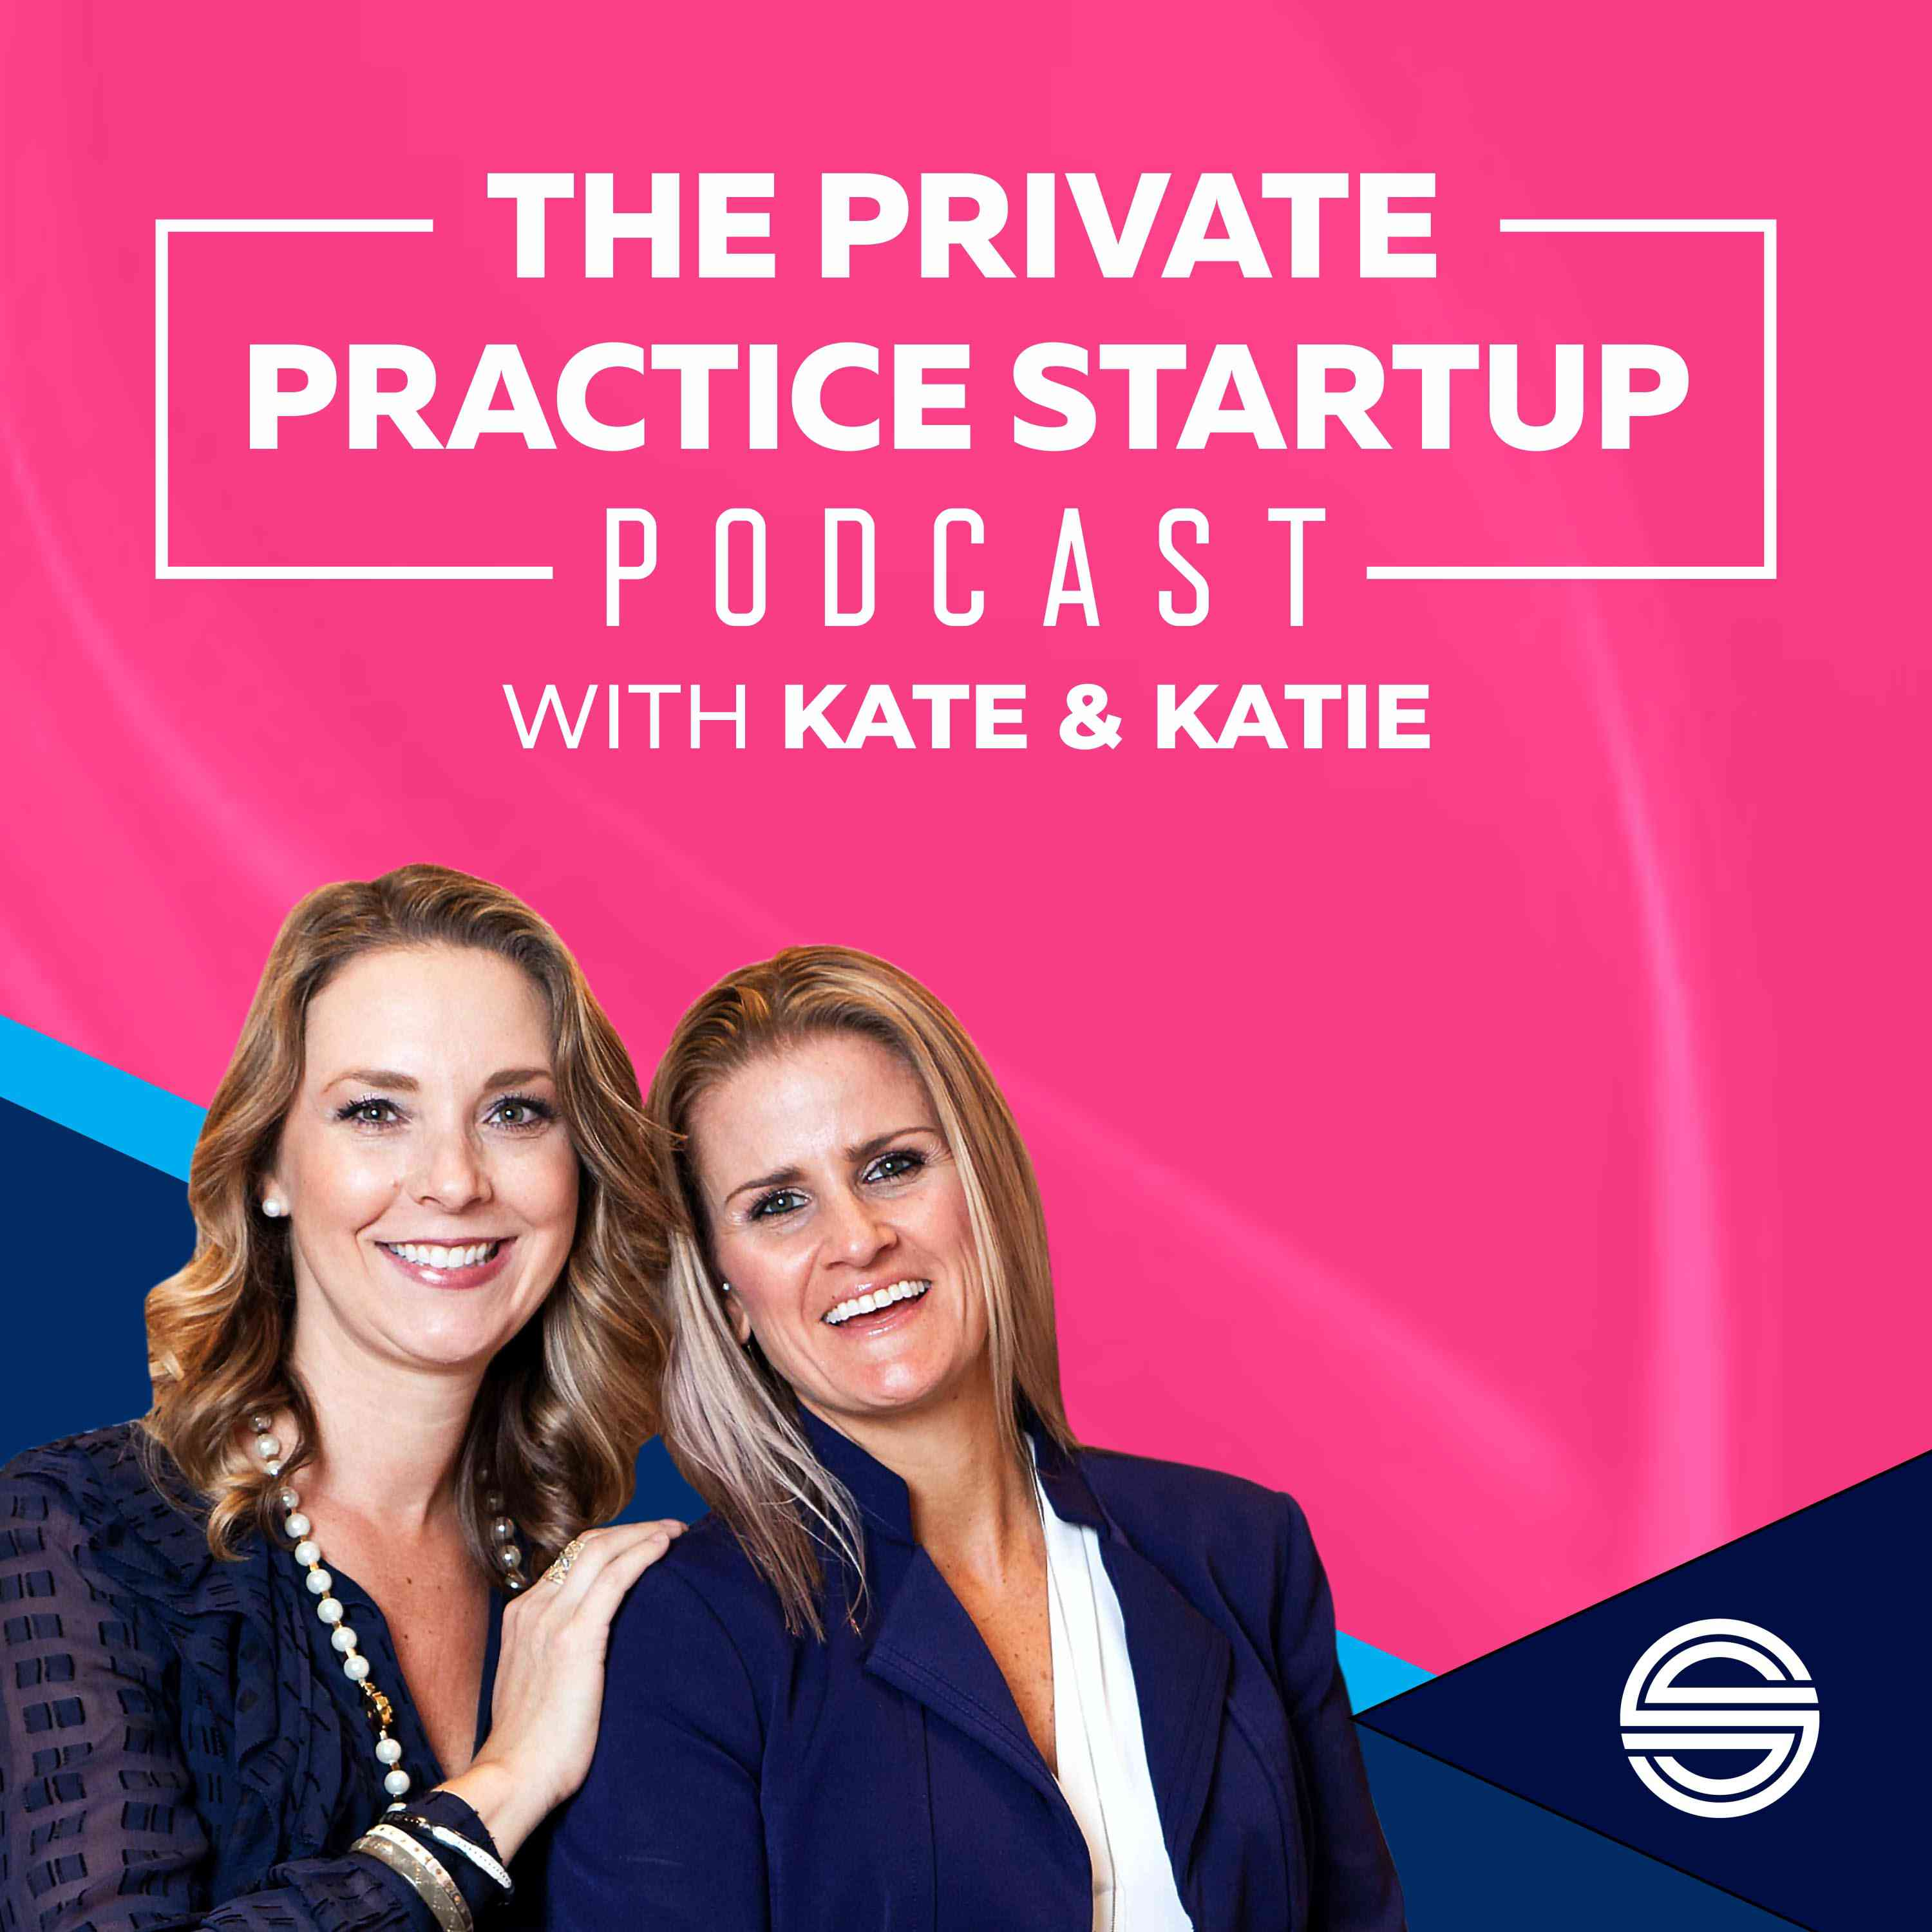 The Private Practice Startup podcast